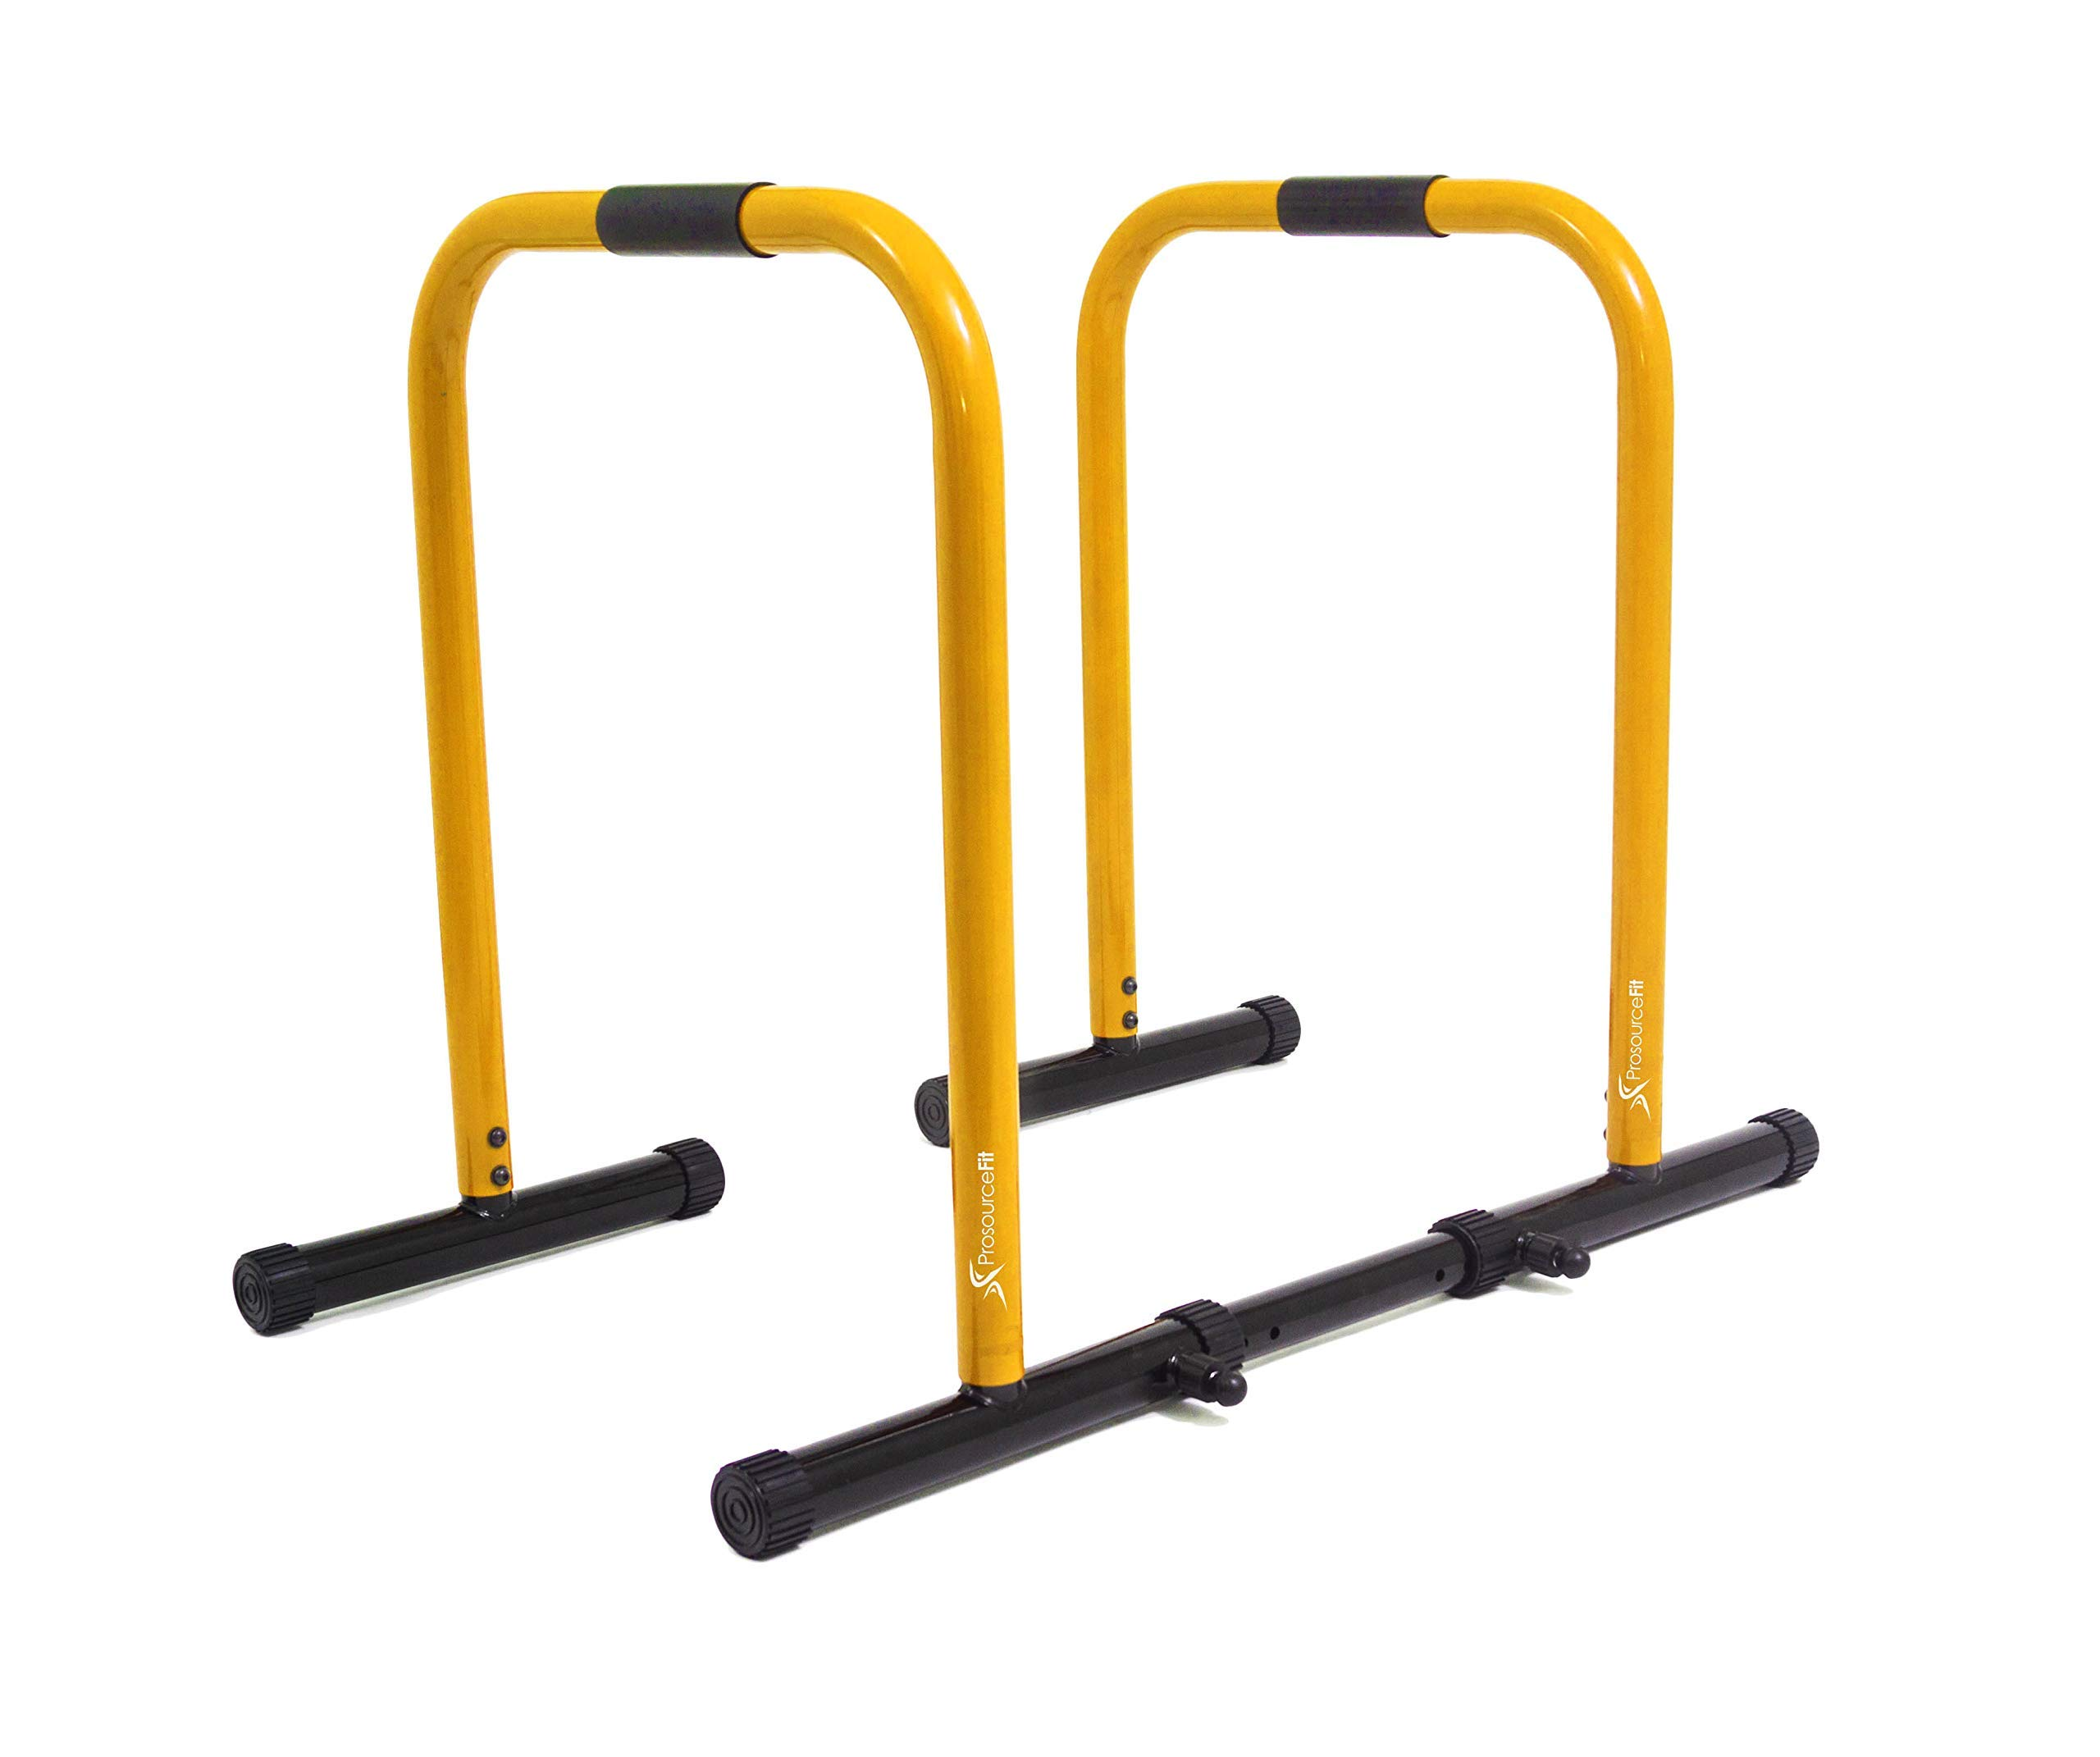 ProsourceFit Dip Stand Station, Heavy Duty Ultimate Body Press Bar with Safety Connector for Tricep Dips, Pull-Ups, Push-Ups, L-Sits, Yellow (Renewed)